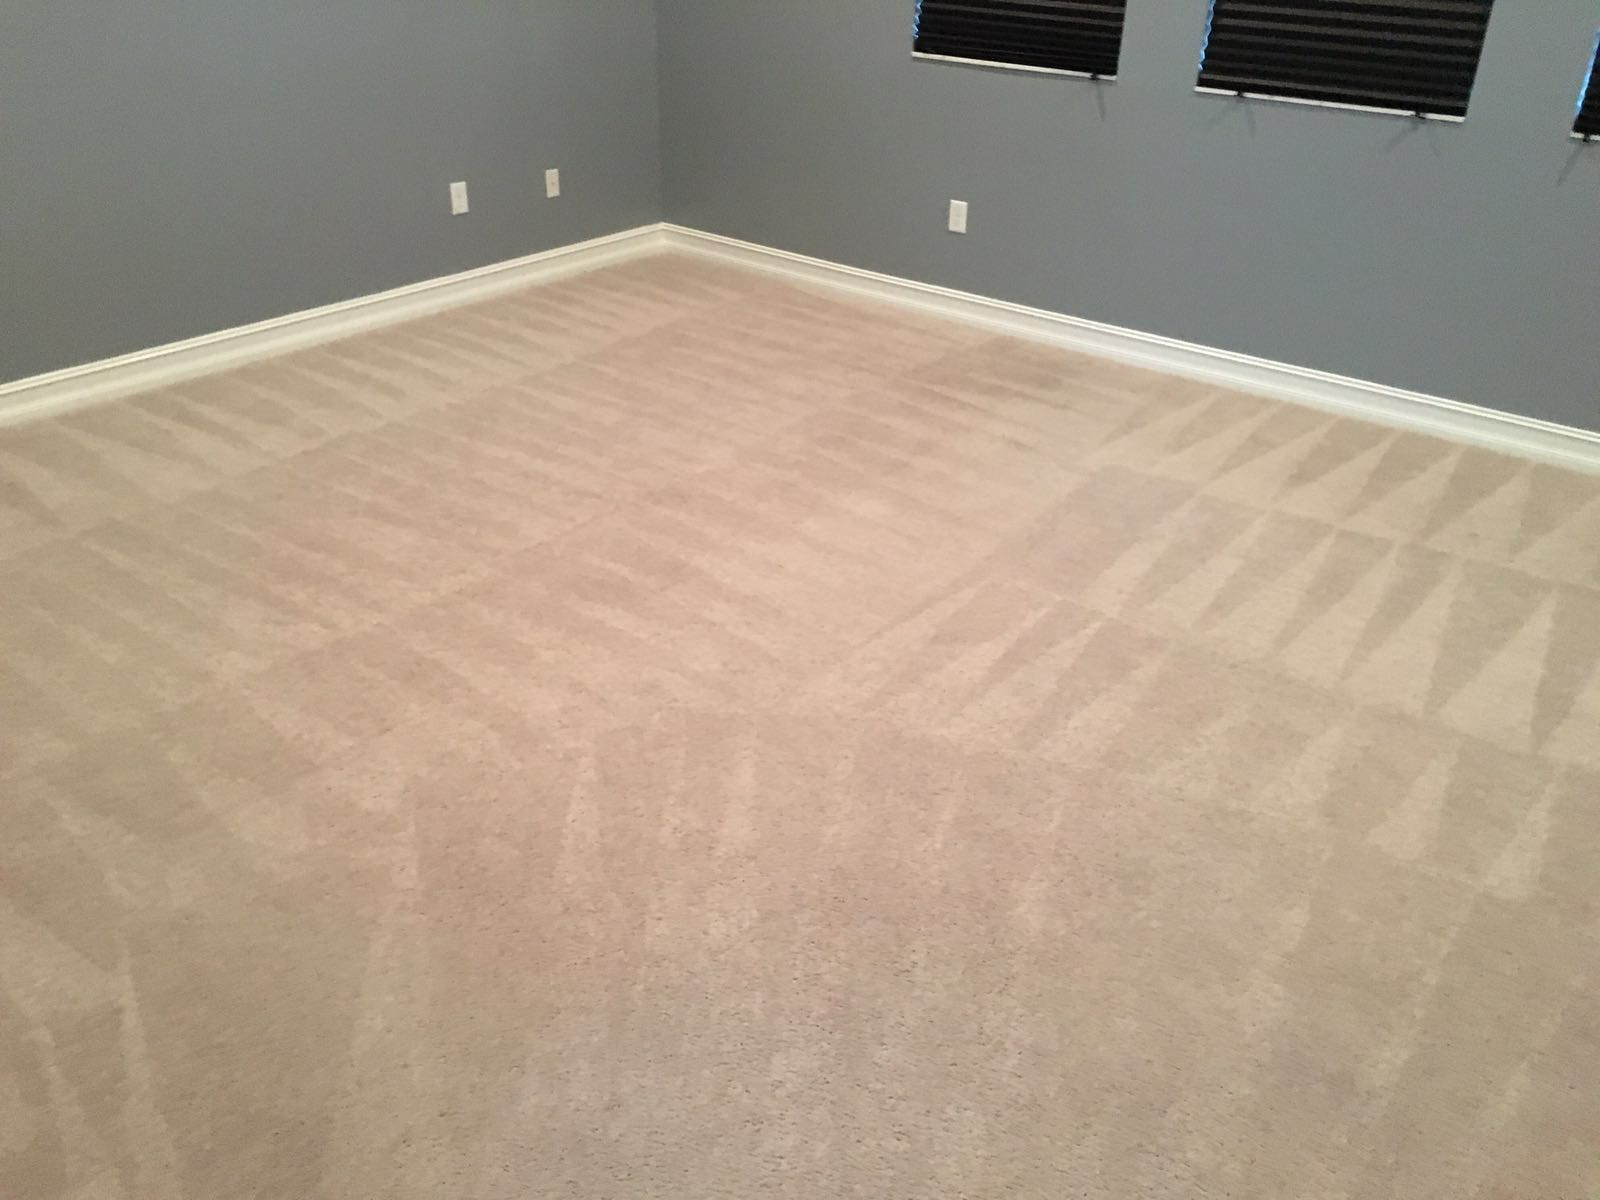 Prime Steamers - Carpet Cleaning Coral Springs 3 954-496-2289